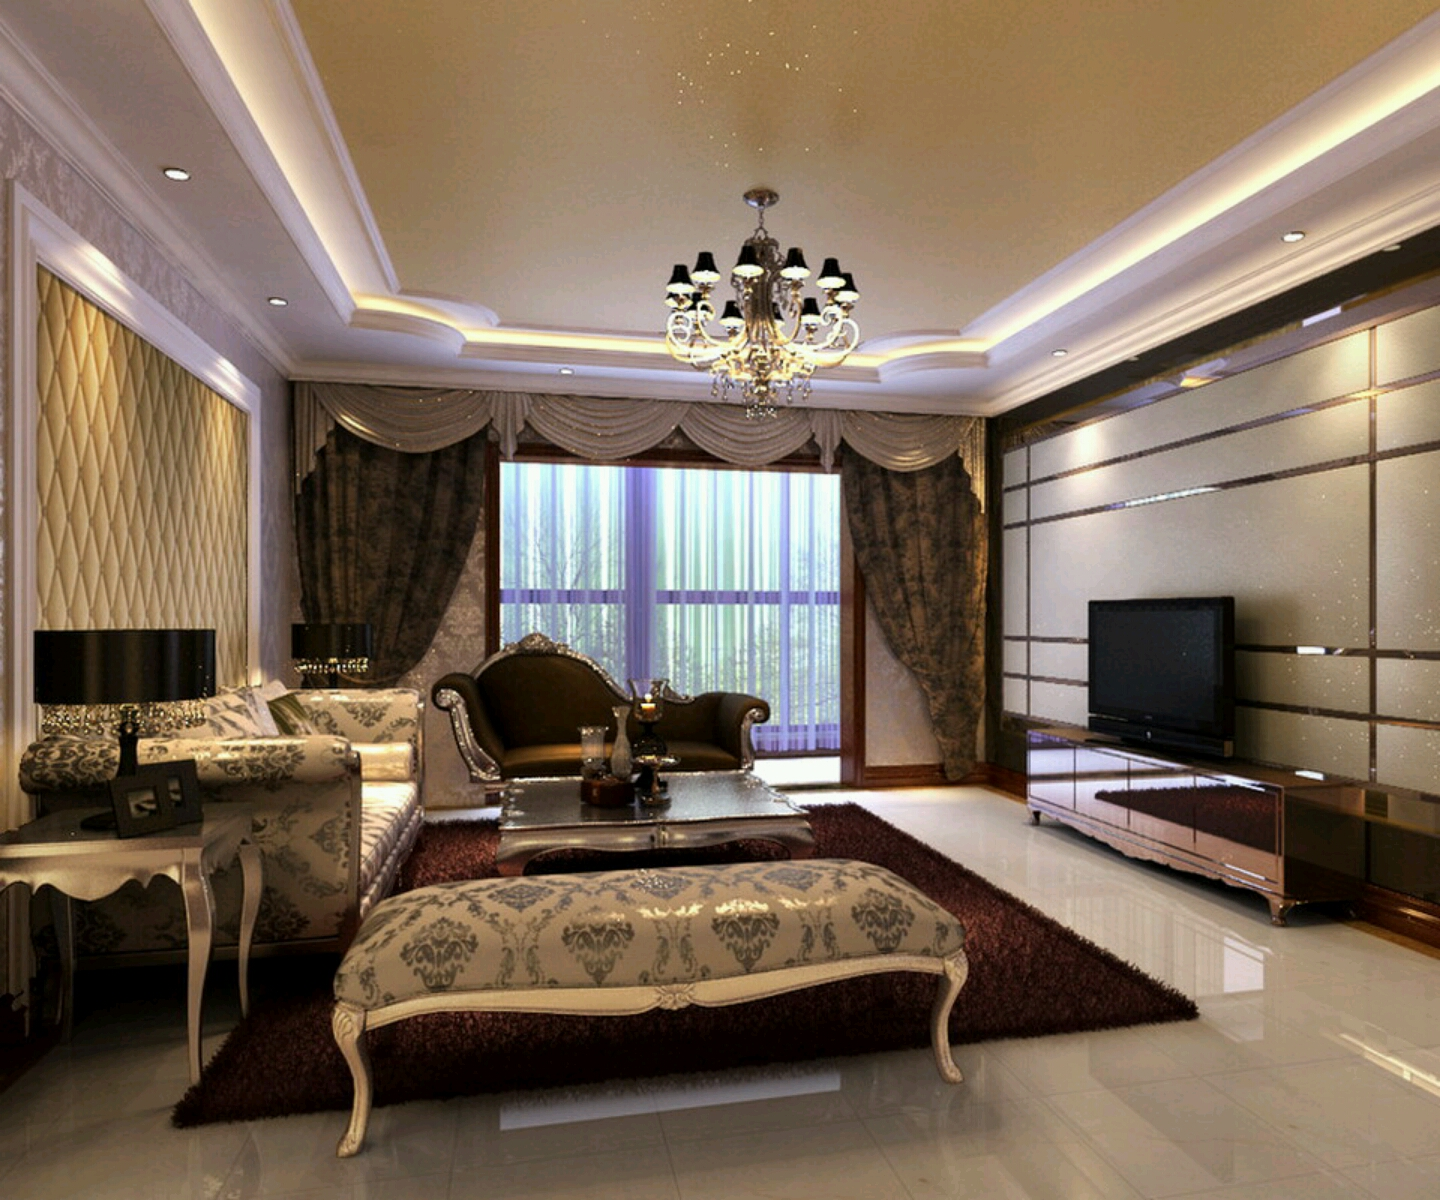 New home designs latest luxury homes interior decoration for Living room decor images